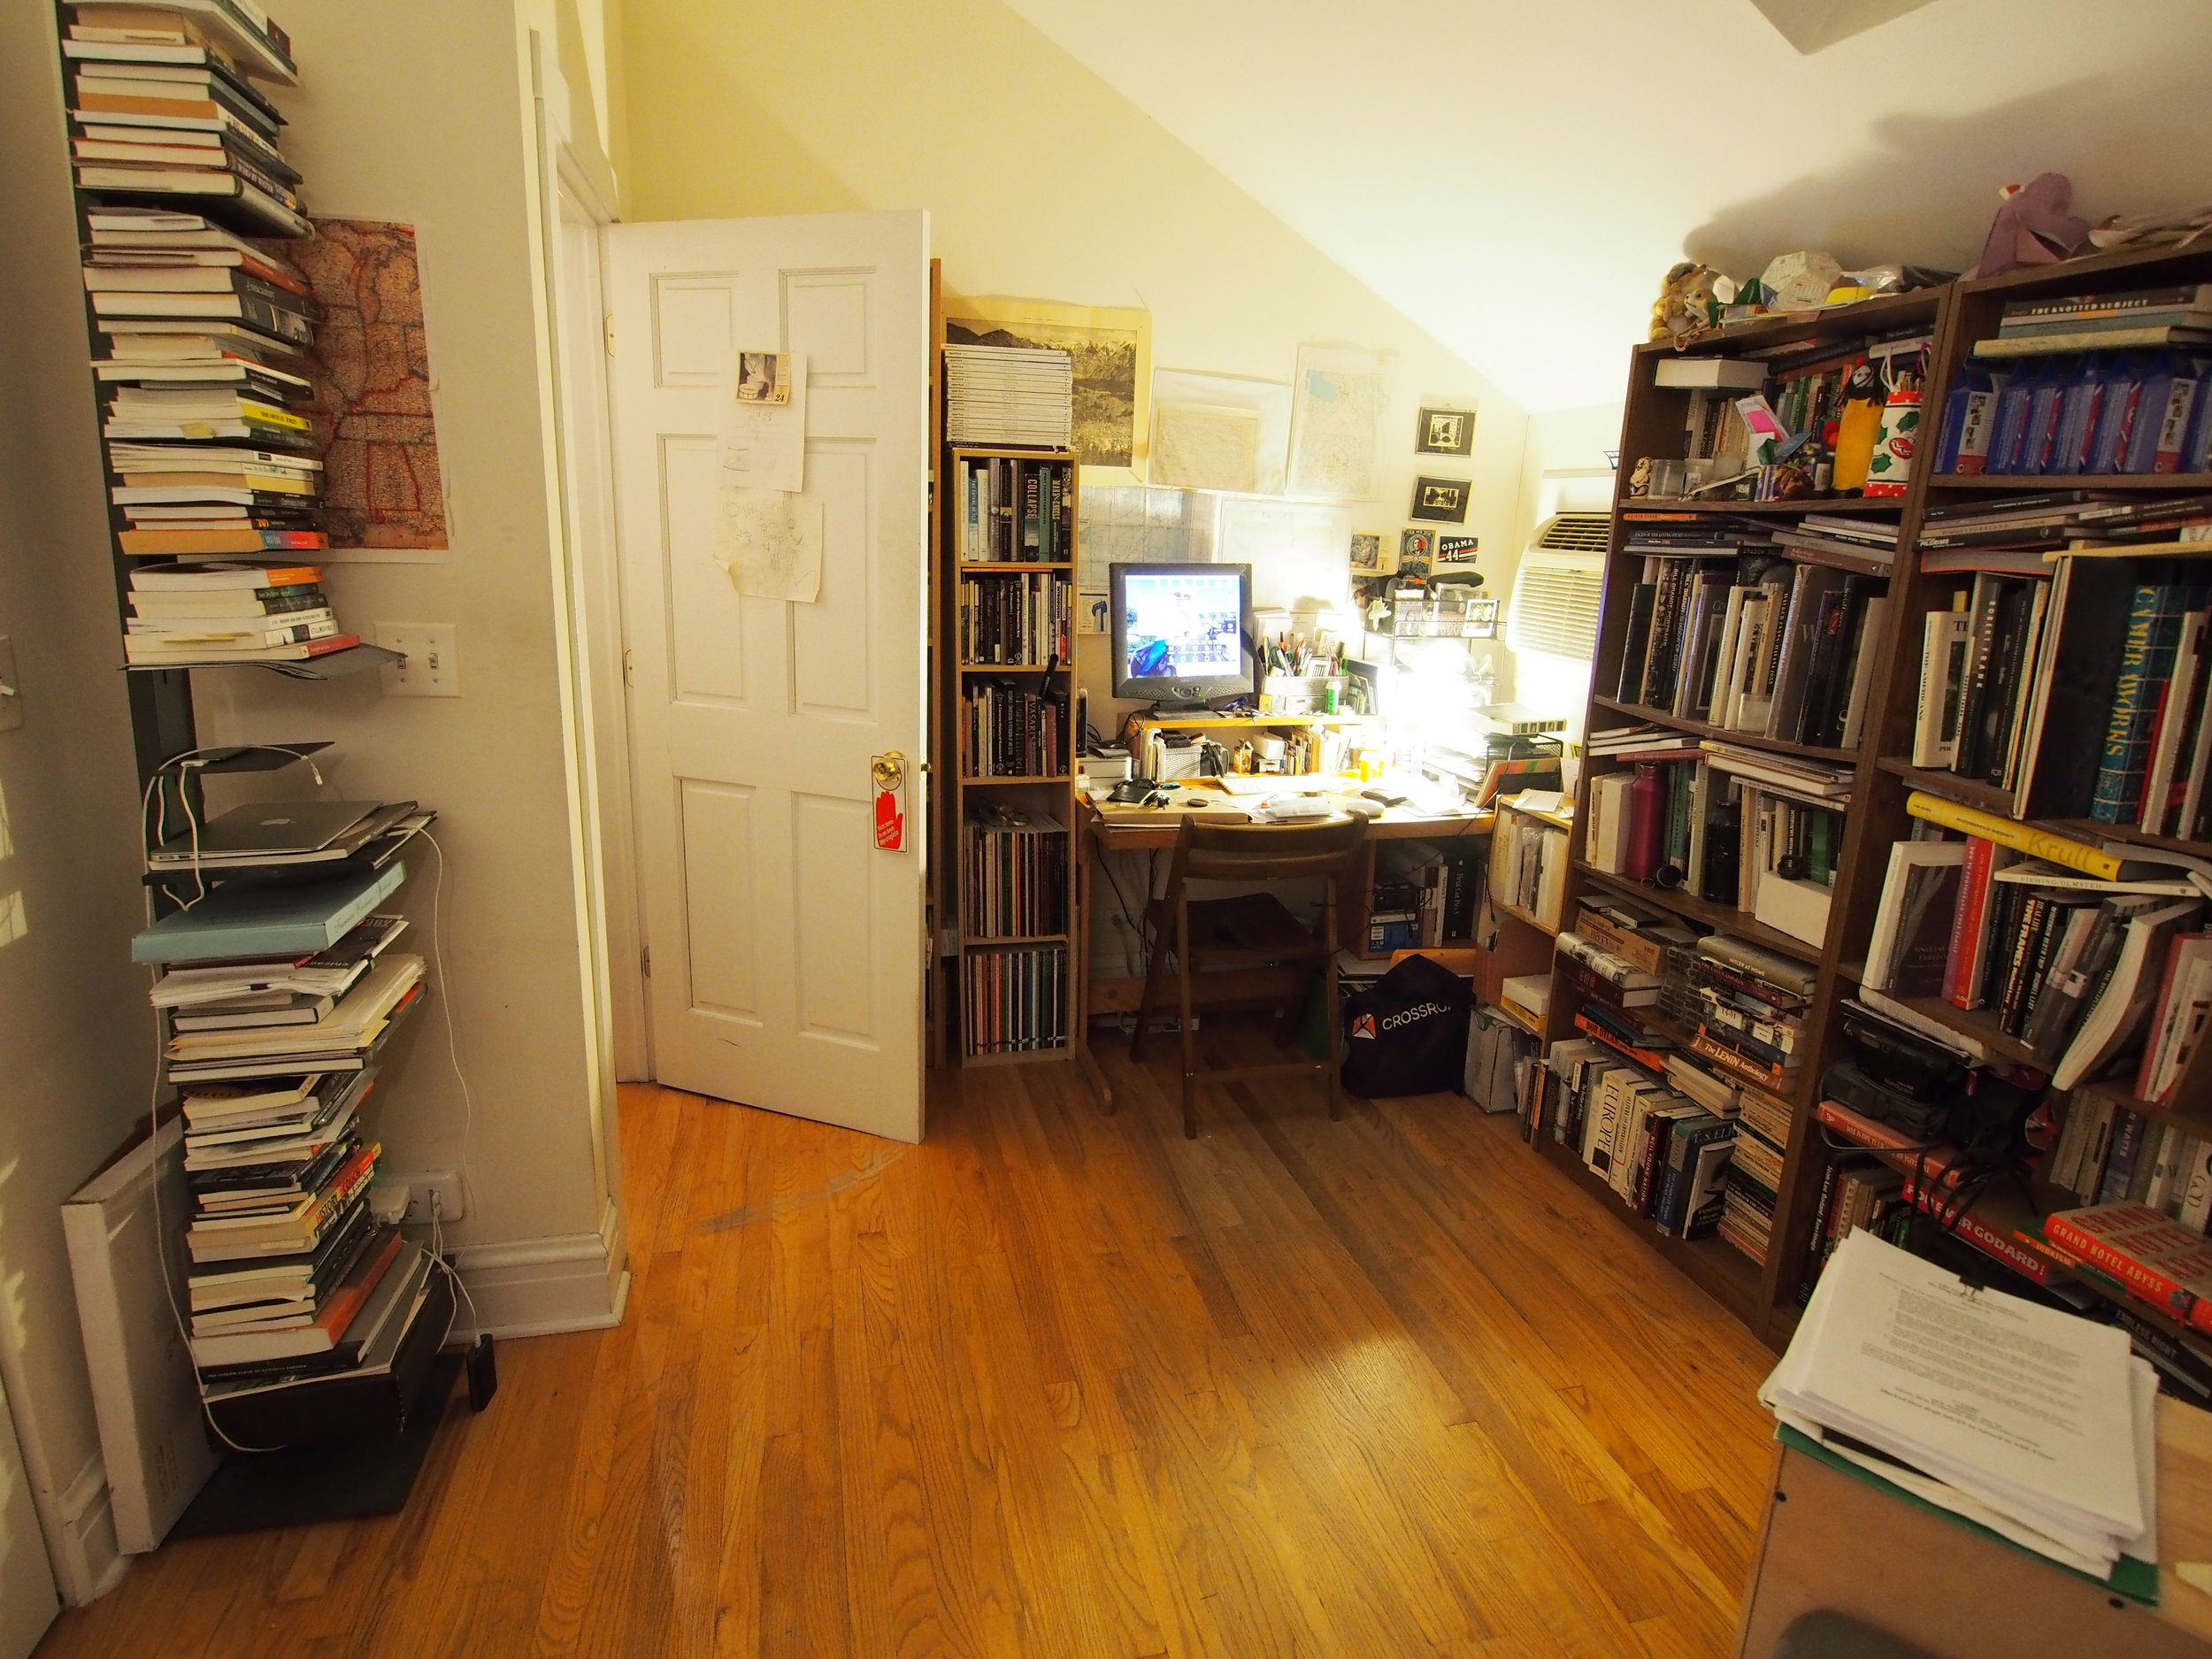 The photobook library in Steve Harp's home study.